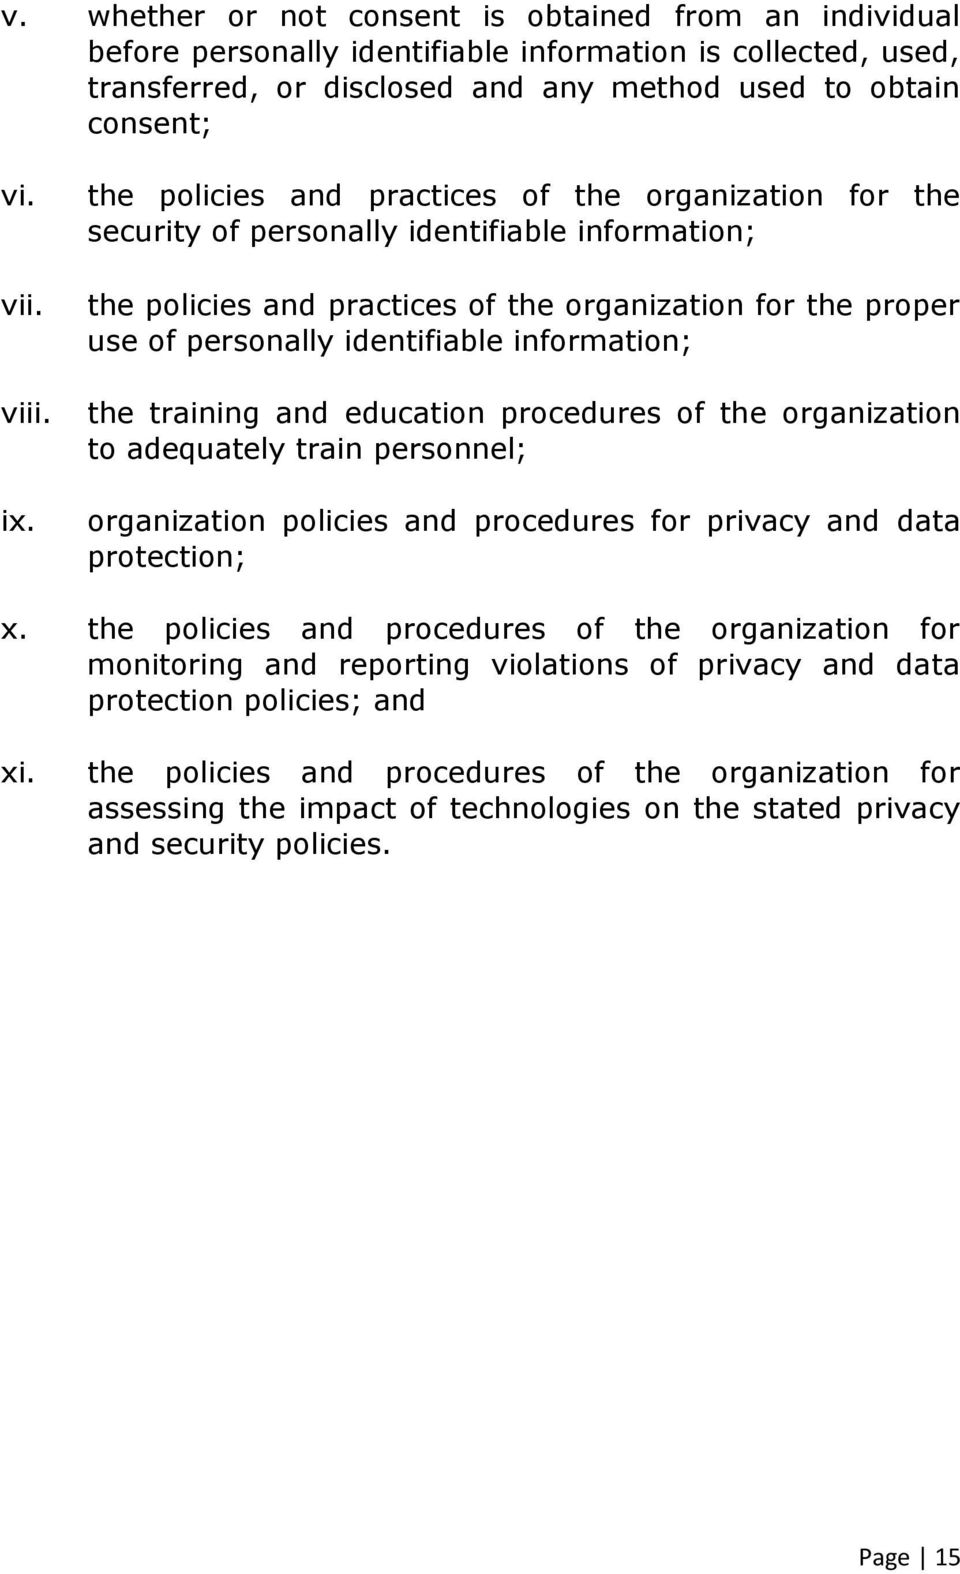 identifiable information; the training and education procedures of the organization to adequately train personnel; organization policies and procedures for privacy and data protection; x.